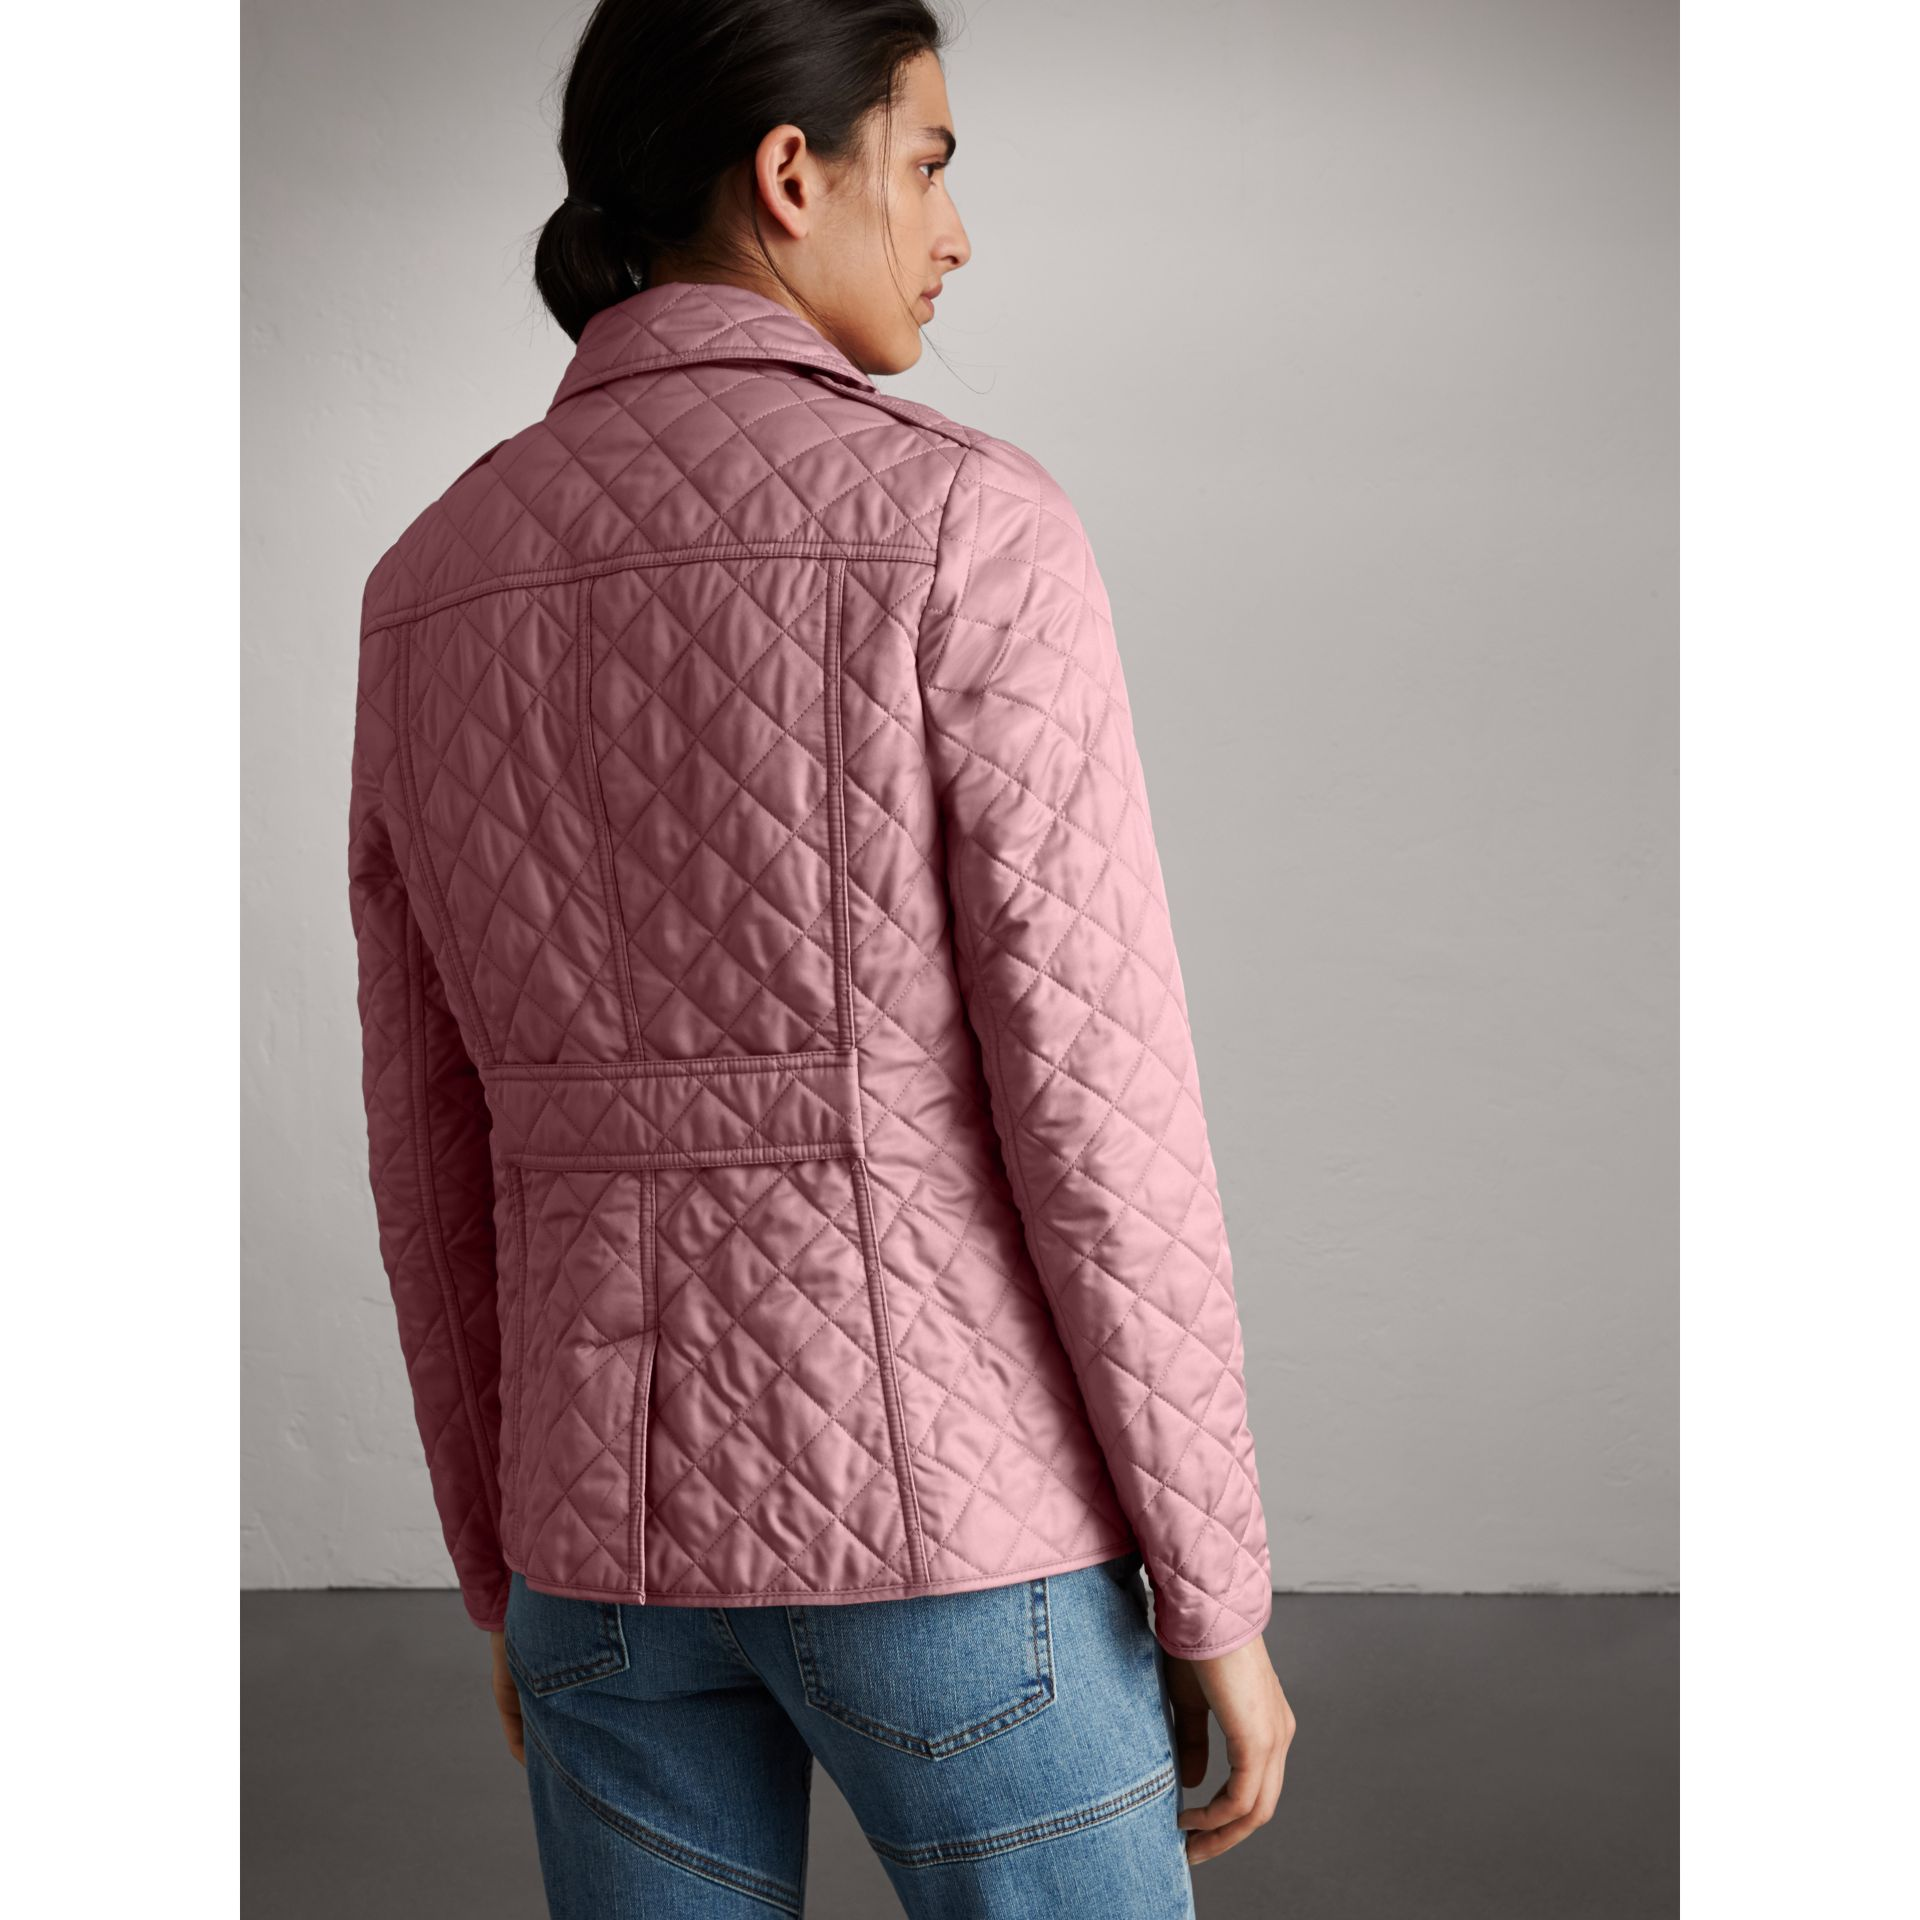 Diamond Quilted Jacket in Vintage Rose - Women | Burberry - gallery image 3